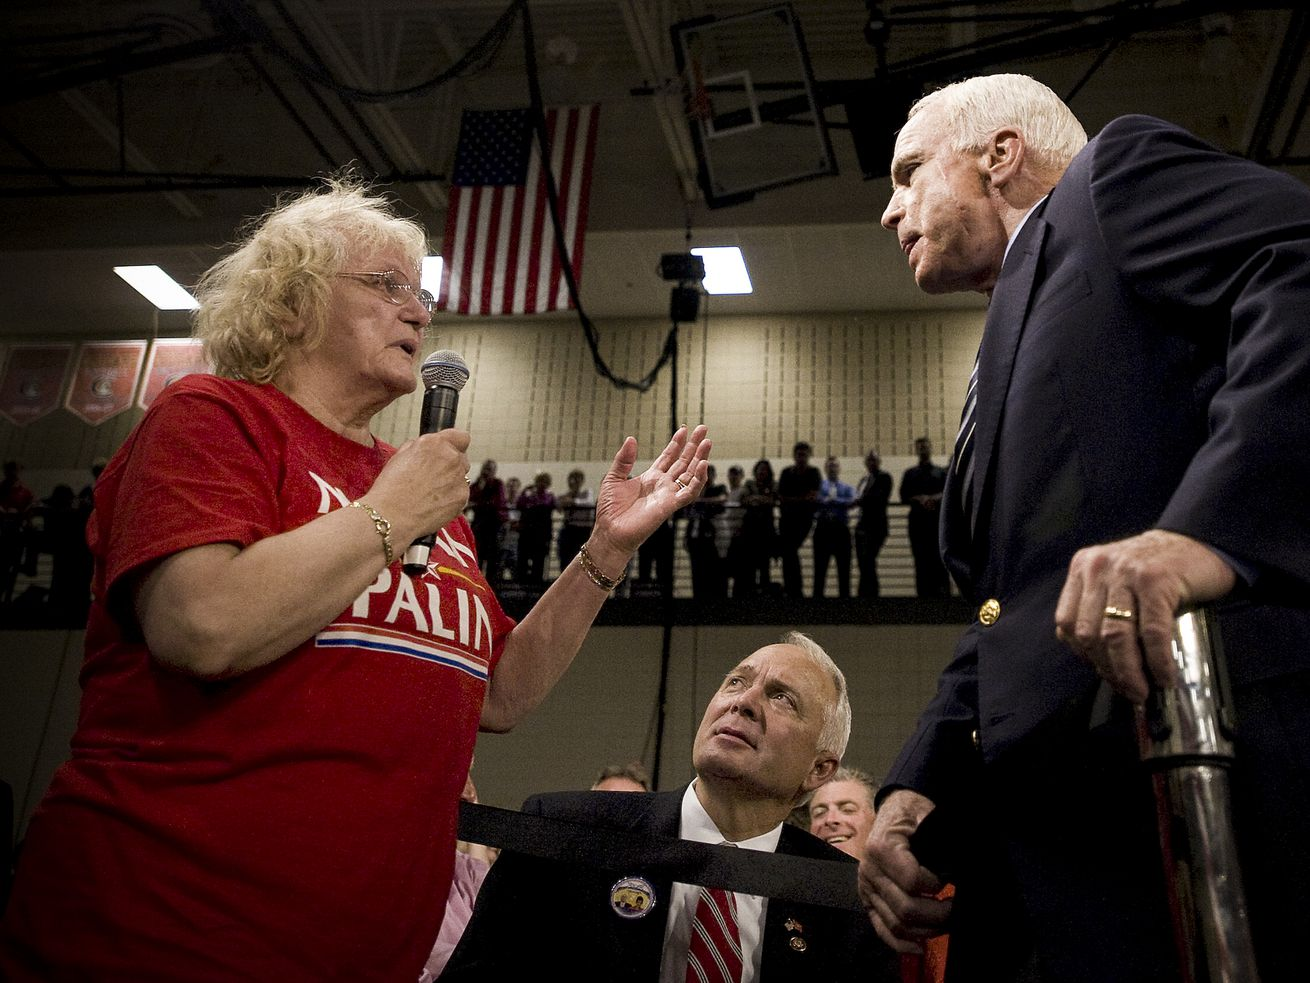 2008 Republican presidential candidate Sen. John McCain takes a question from a supporter, who called then-Democratic presidential candidate Barack Obama an Arab, during a town hall meeting in Lakeville, Minnesota, October 10, 2008. McCain urged his supporters to stop hurling abuse against Barack Obama at his rallies, saying he admired and respected his Democratic rival.